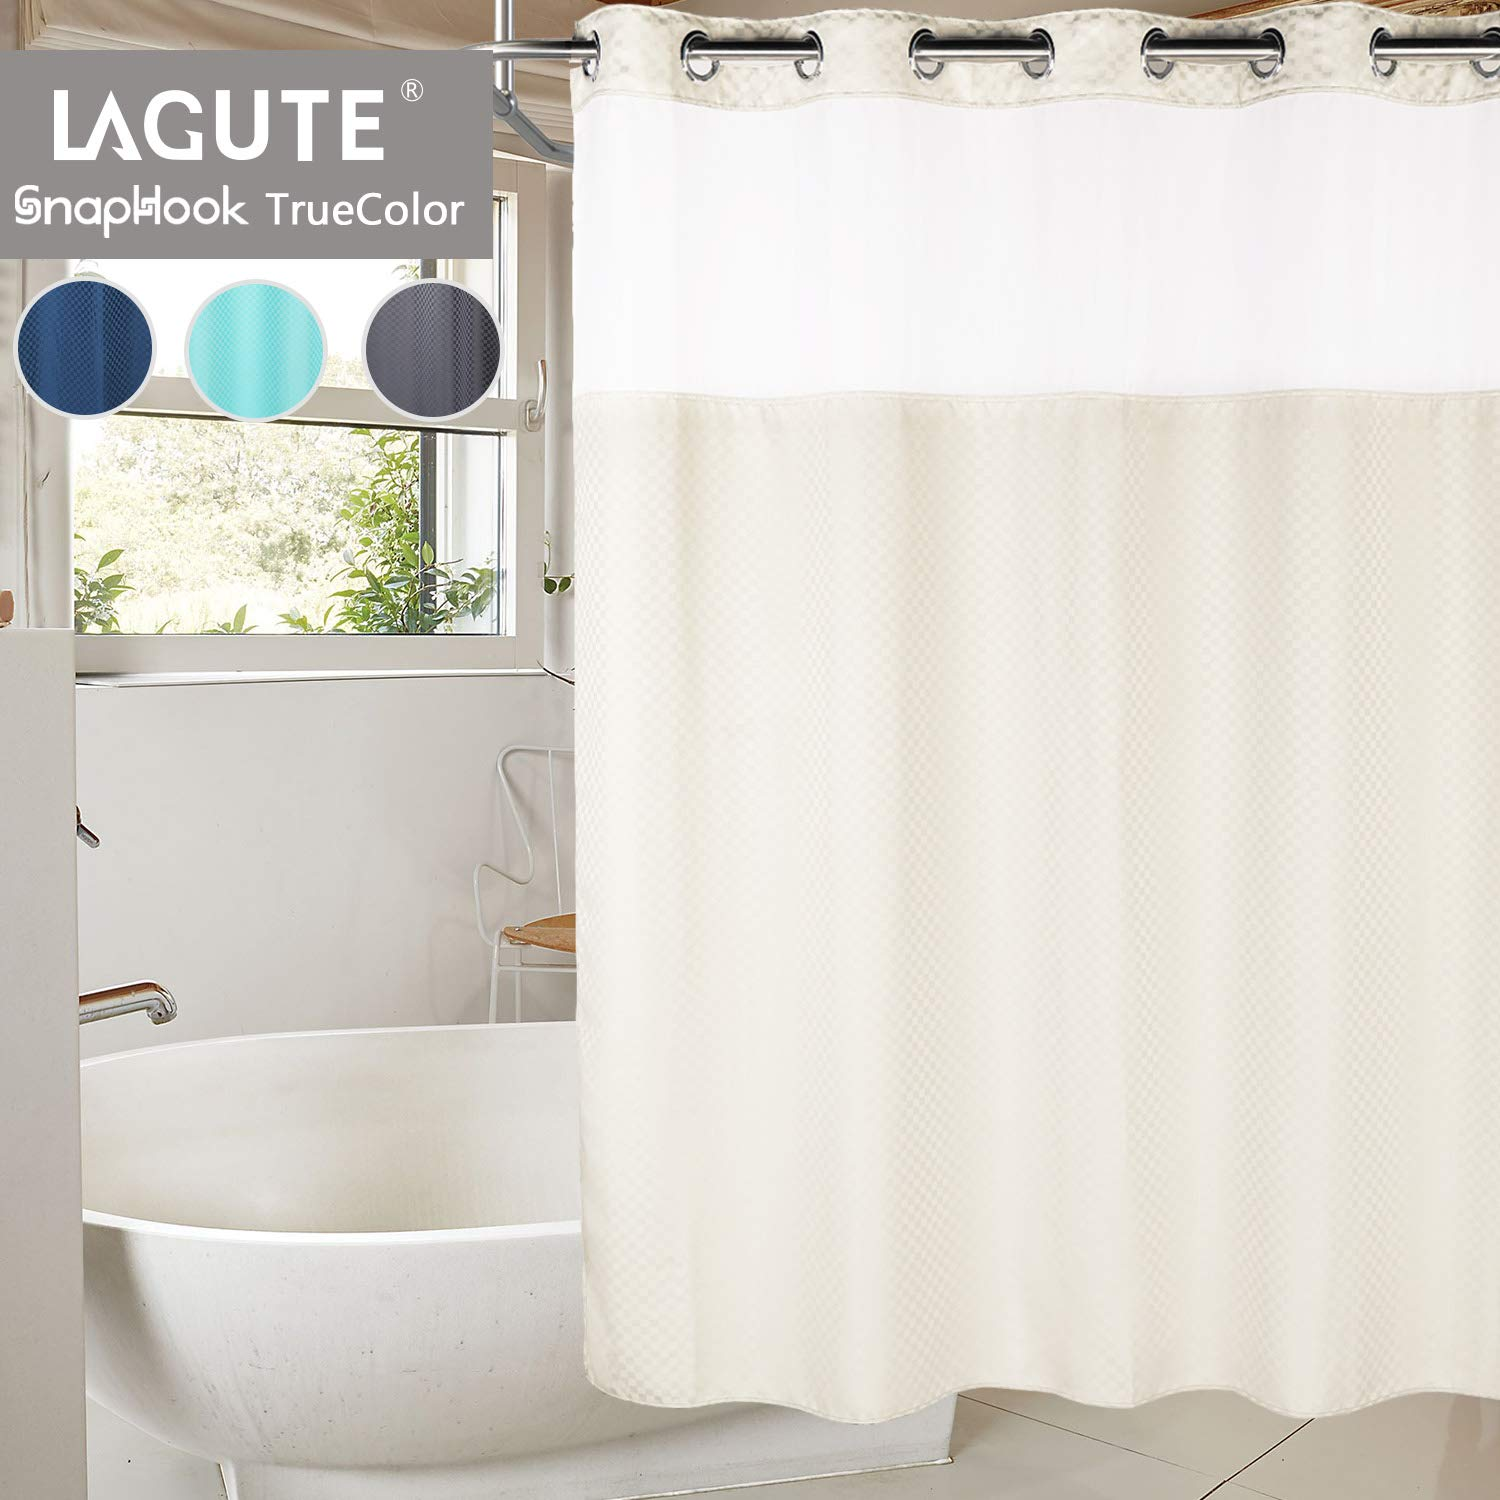 Lagute Snaphook TrueColor Hookless Shower Curtain, Removable Liner | See Through Top | Machine Washable | Beige